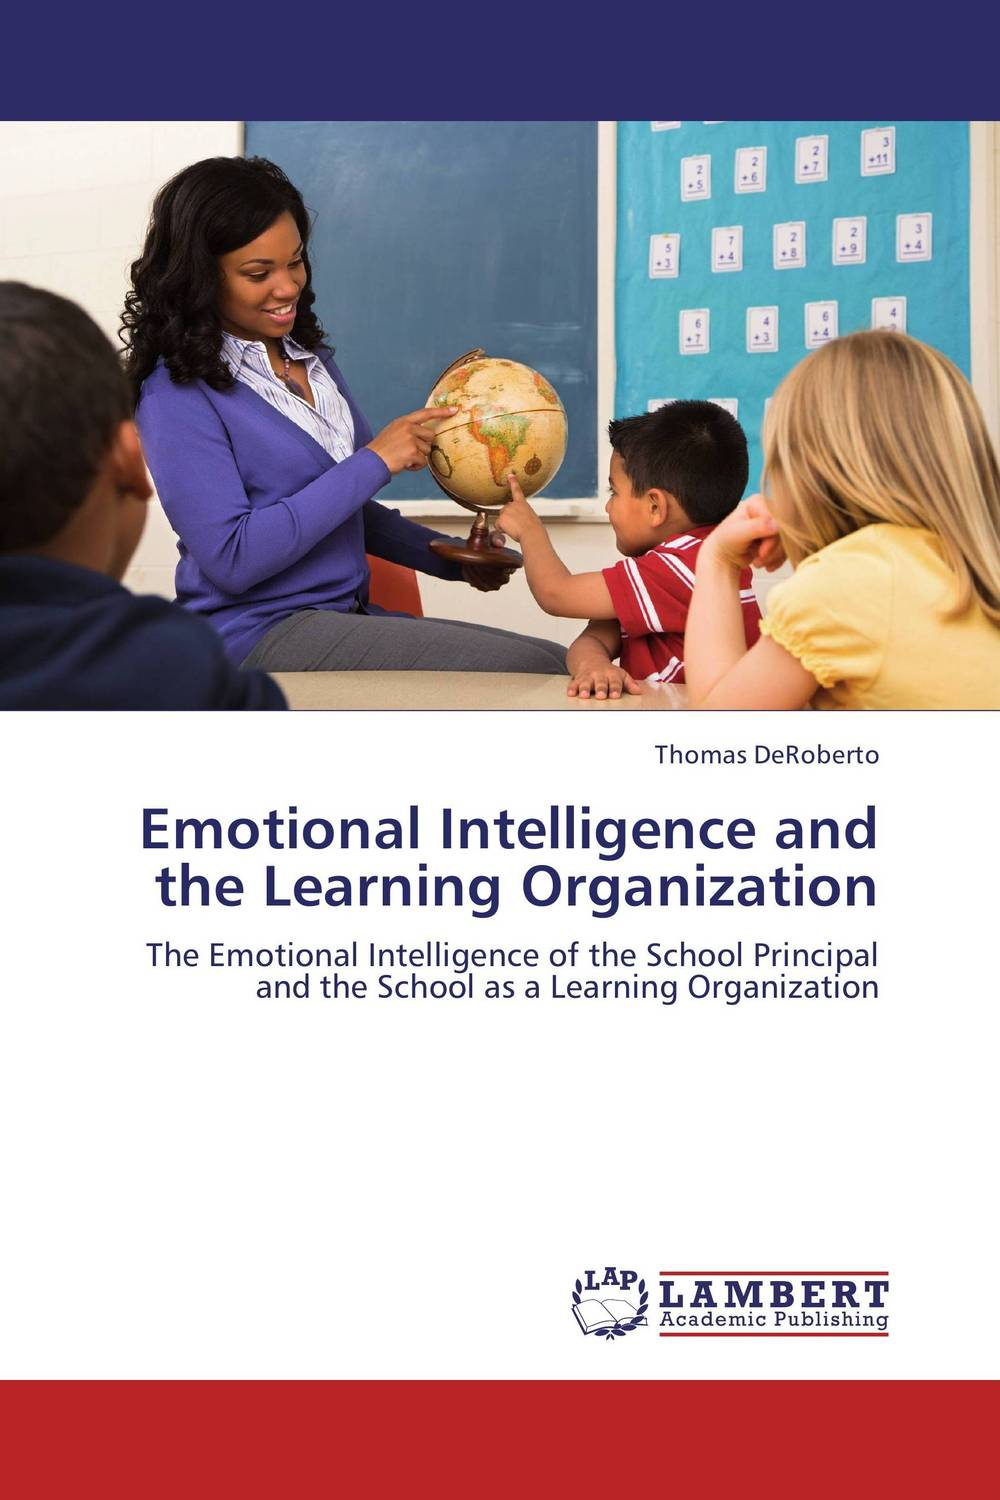 Emotional Intelligence and the Learning Organization thomas deroberto emotional intelligence and the learning organization